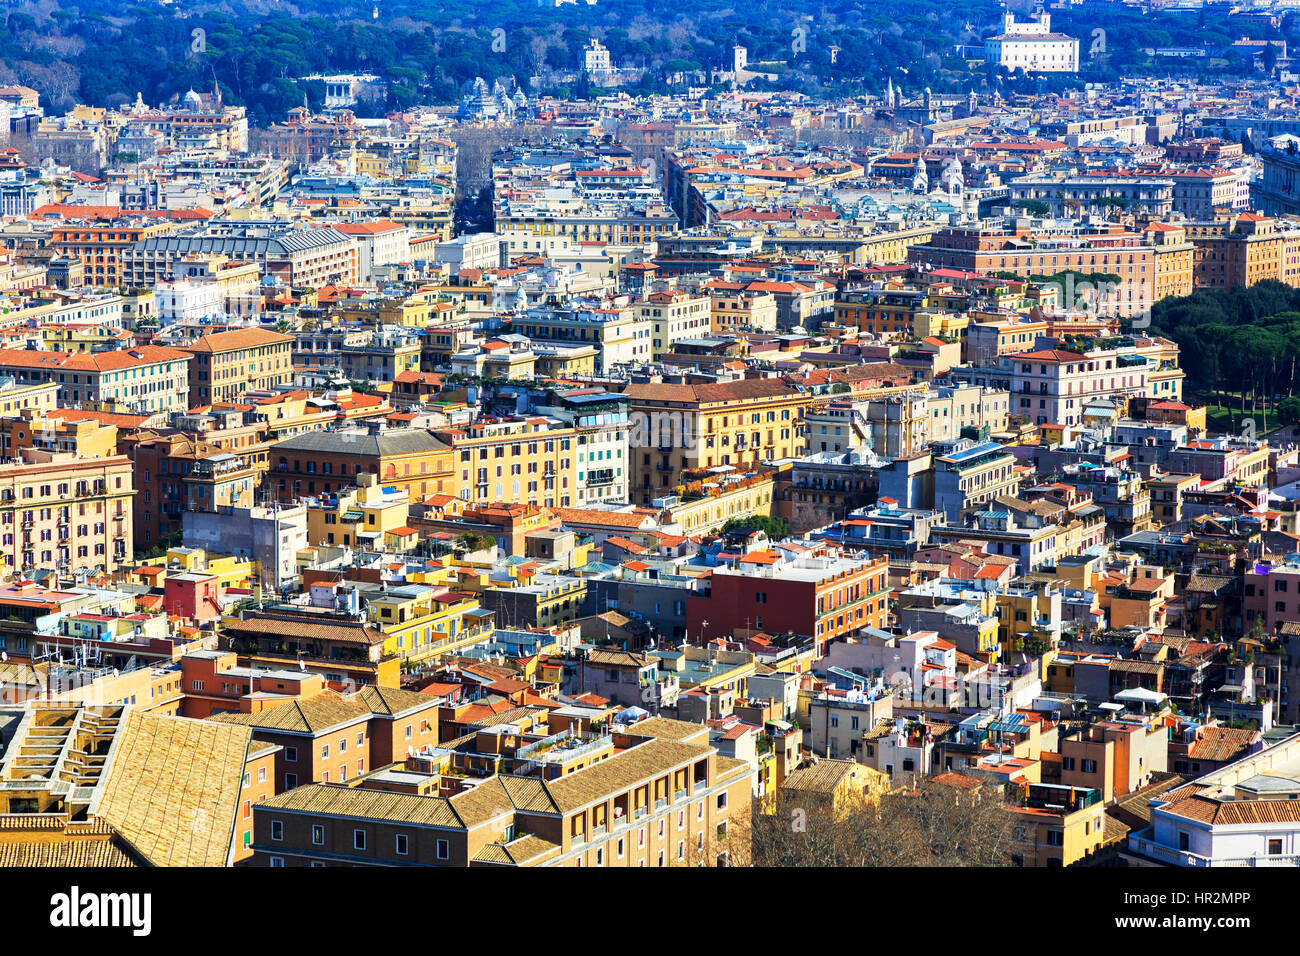 Skyline of Rome city, Italy - Stock Image